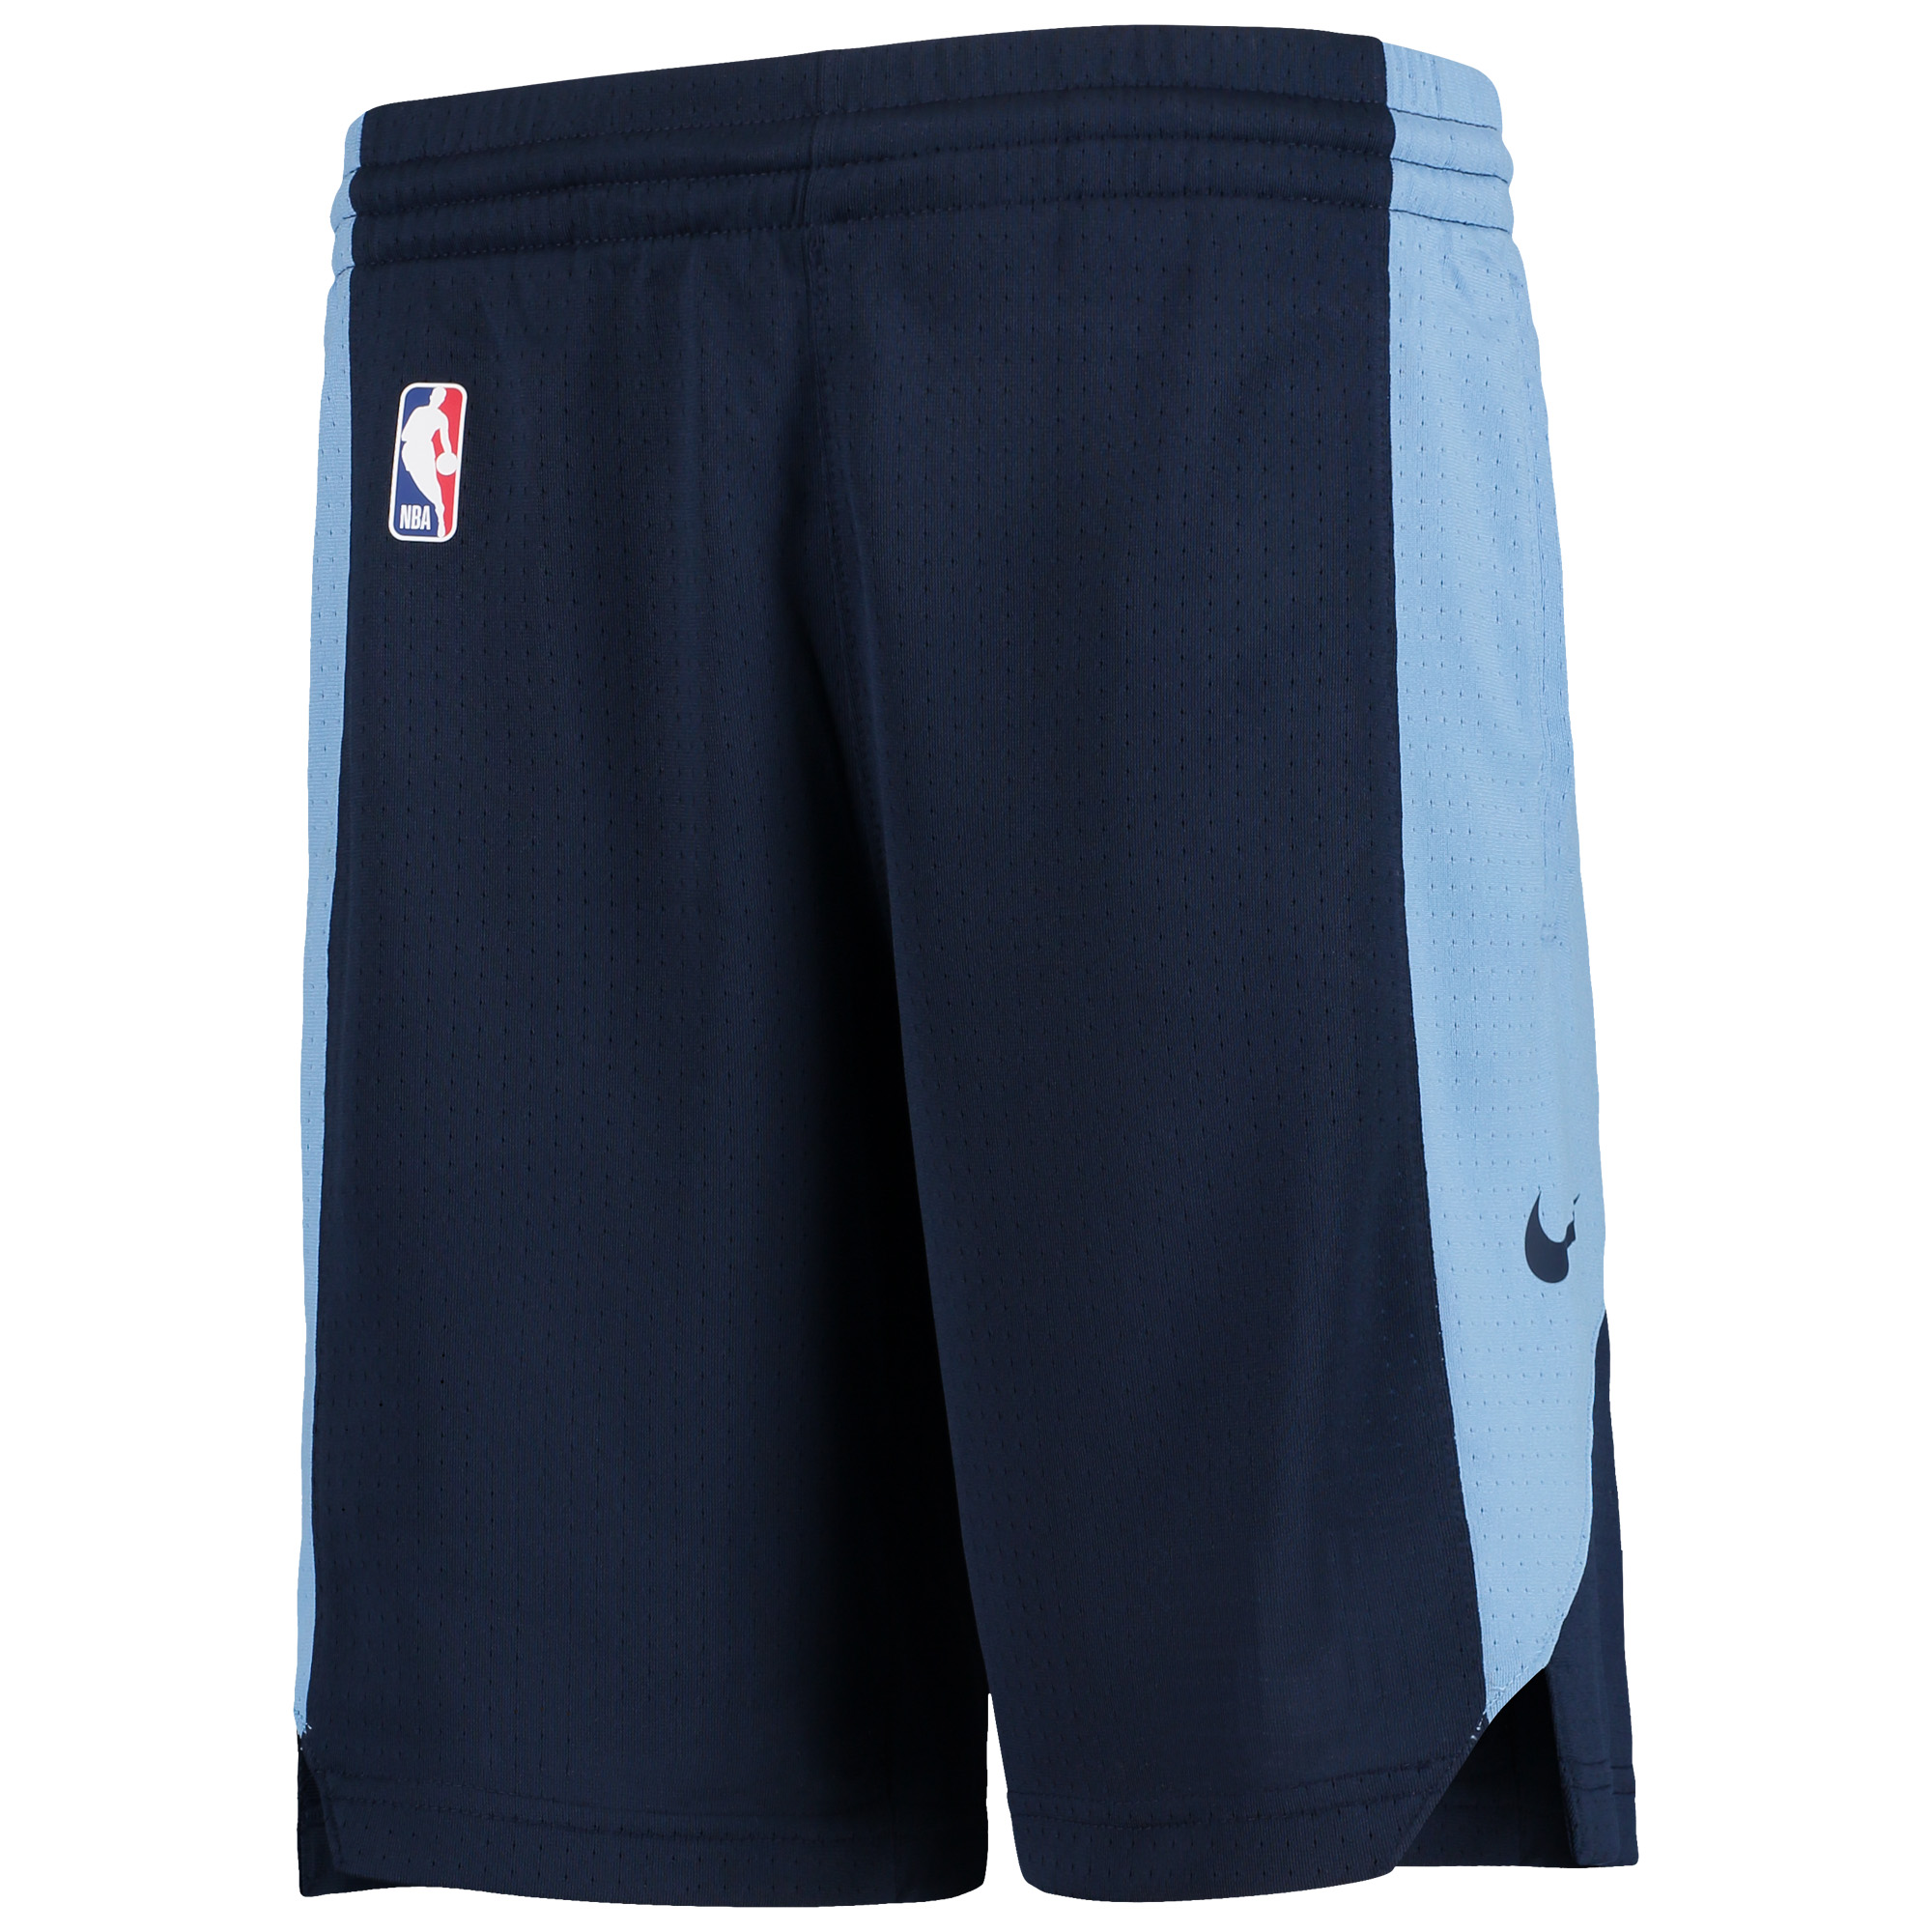 Memphis Grizzlies Nike Youth Performance Practice Shorts - Navy/Blue